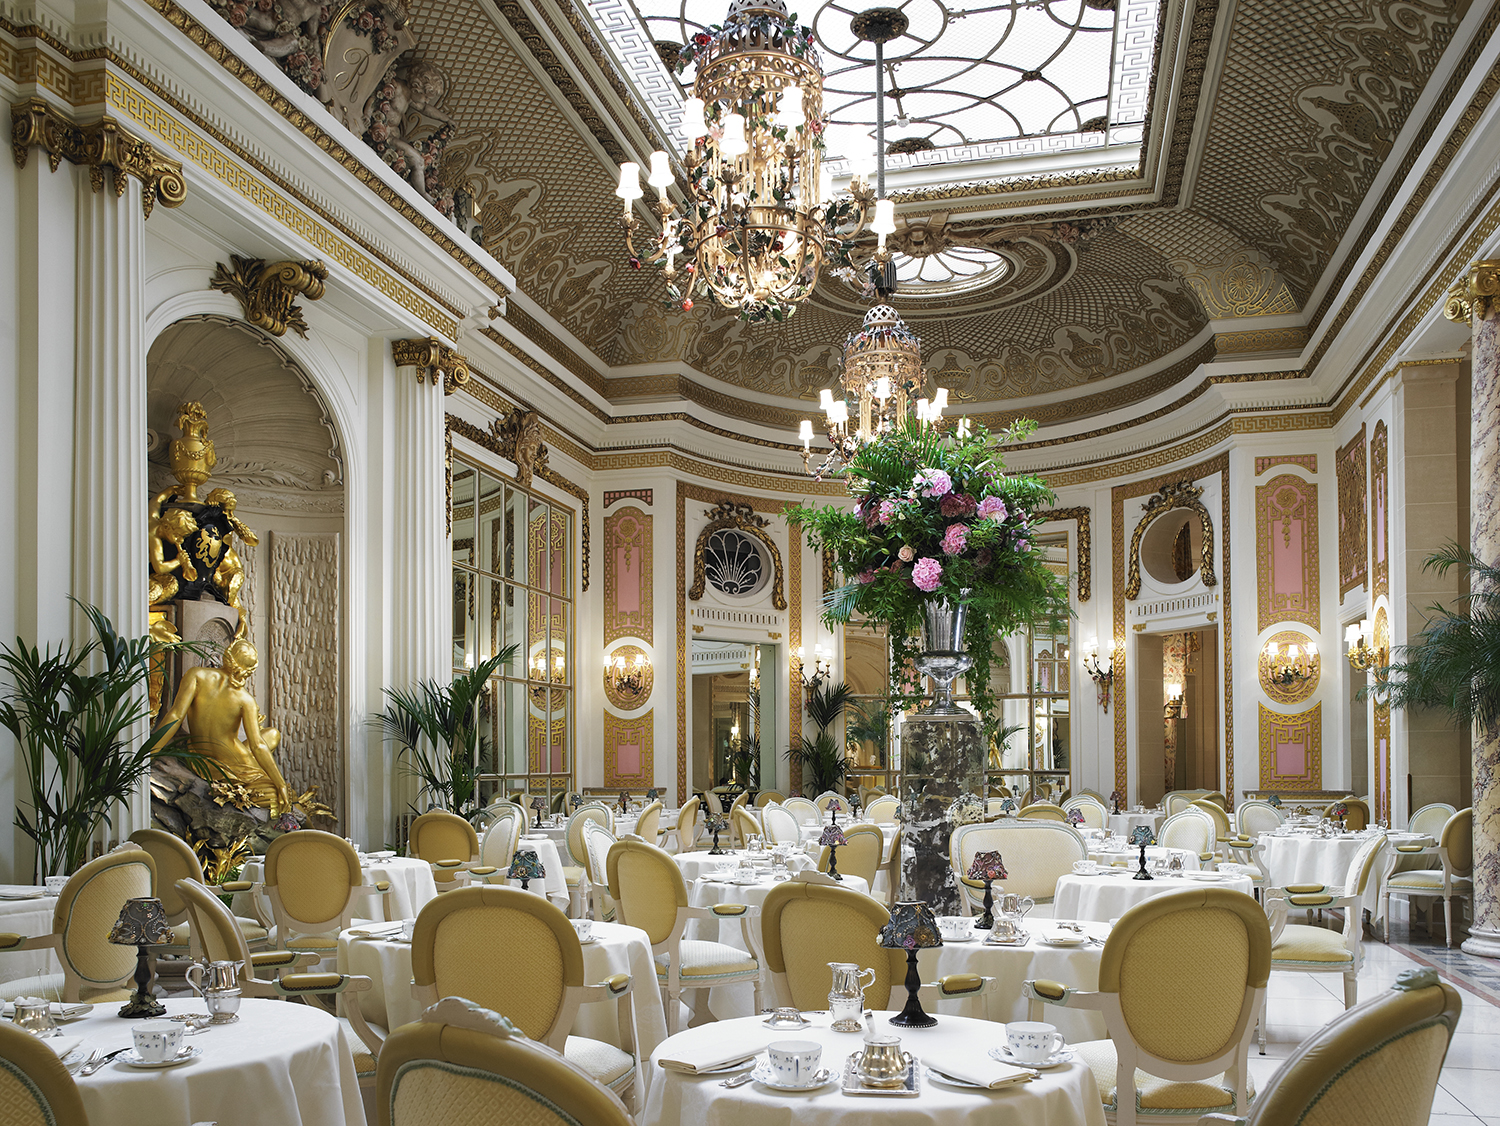 The Palm Court at The Ritz | Courtesy of The Ritz